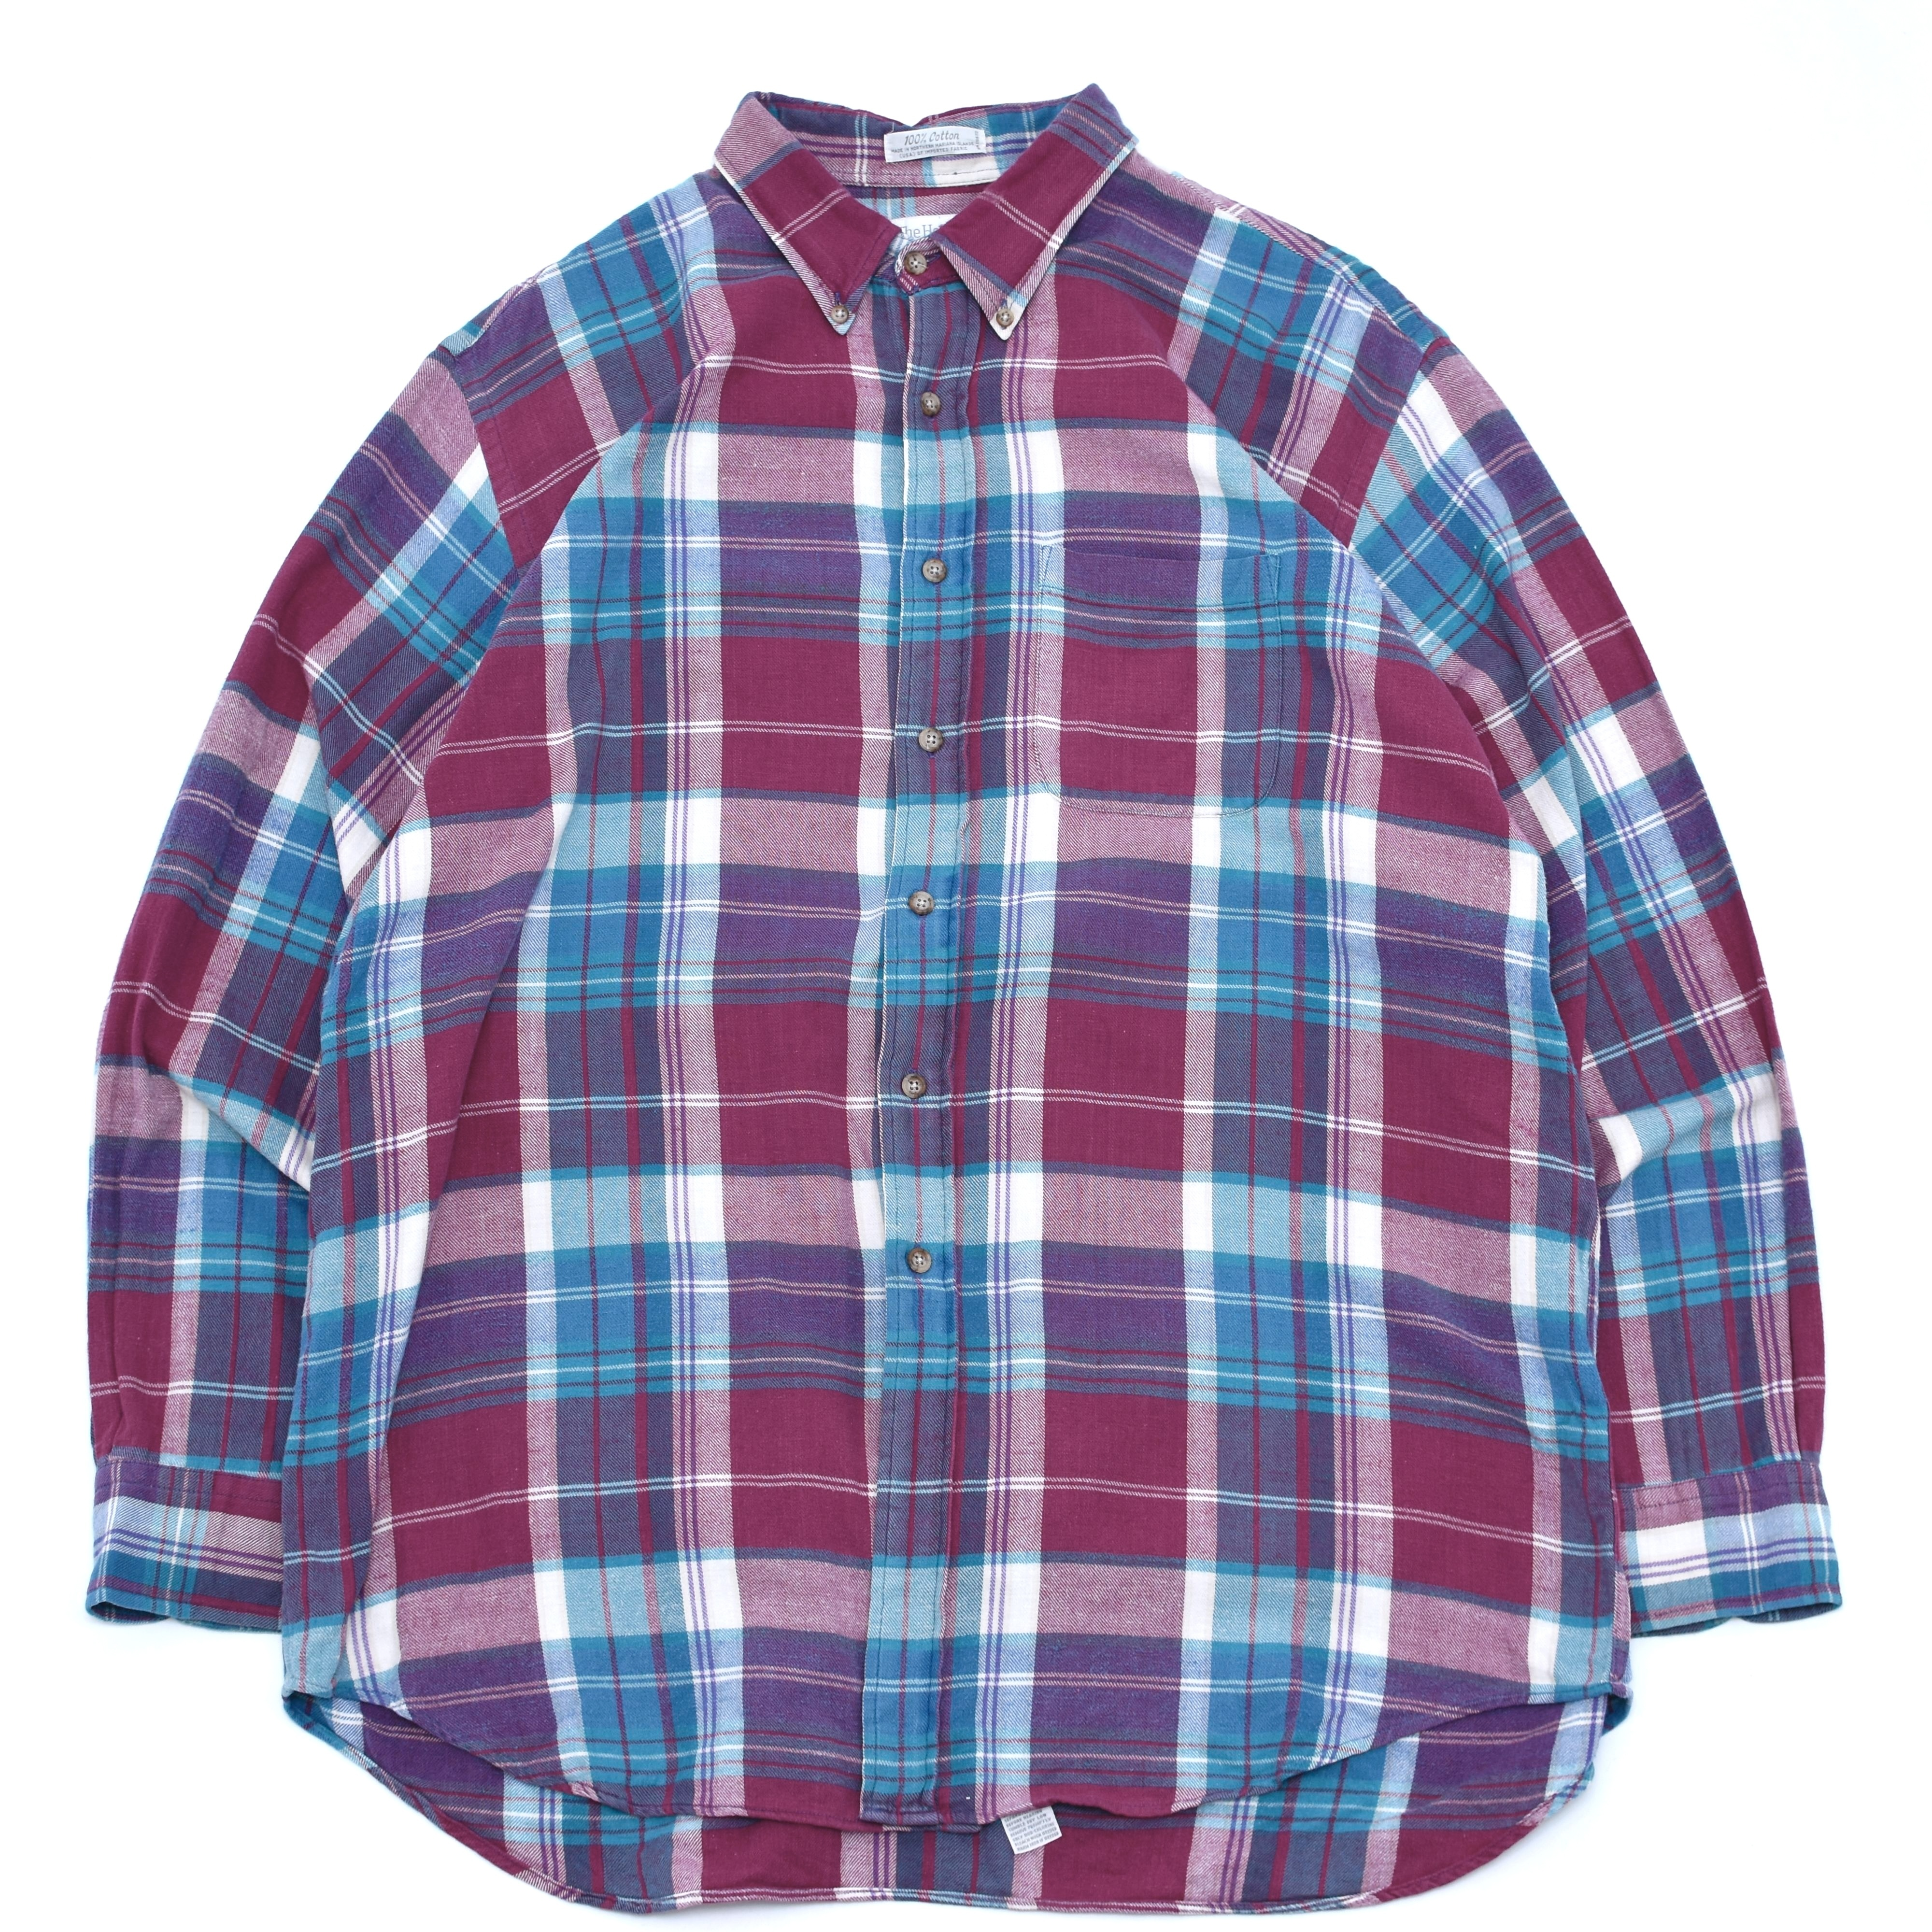 90's The Holbrook.co flannel check shirt